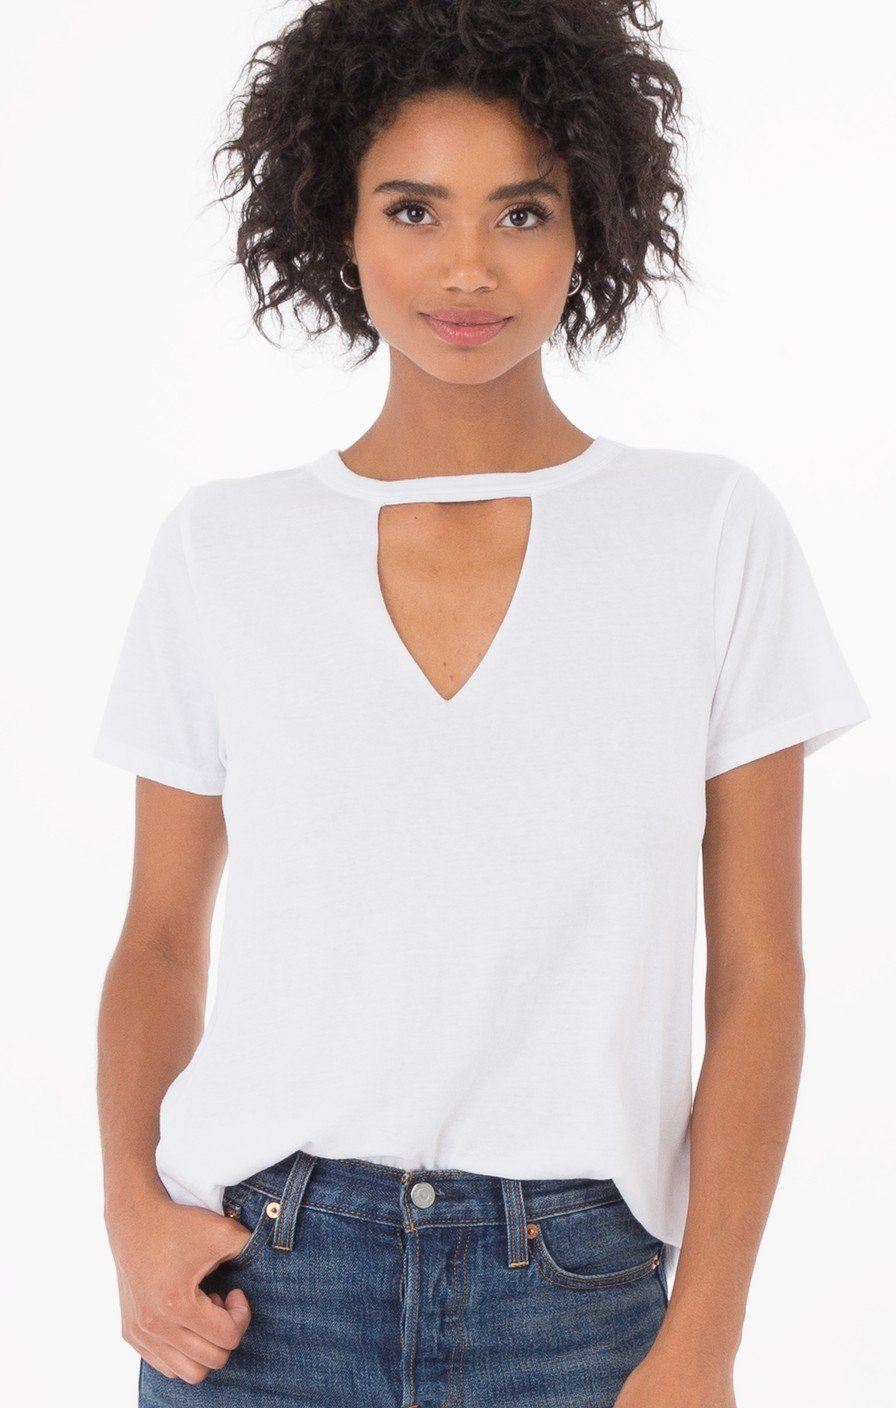 Z Supply Cut -Out White Tee